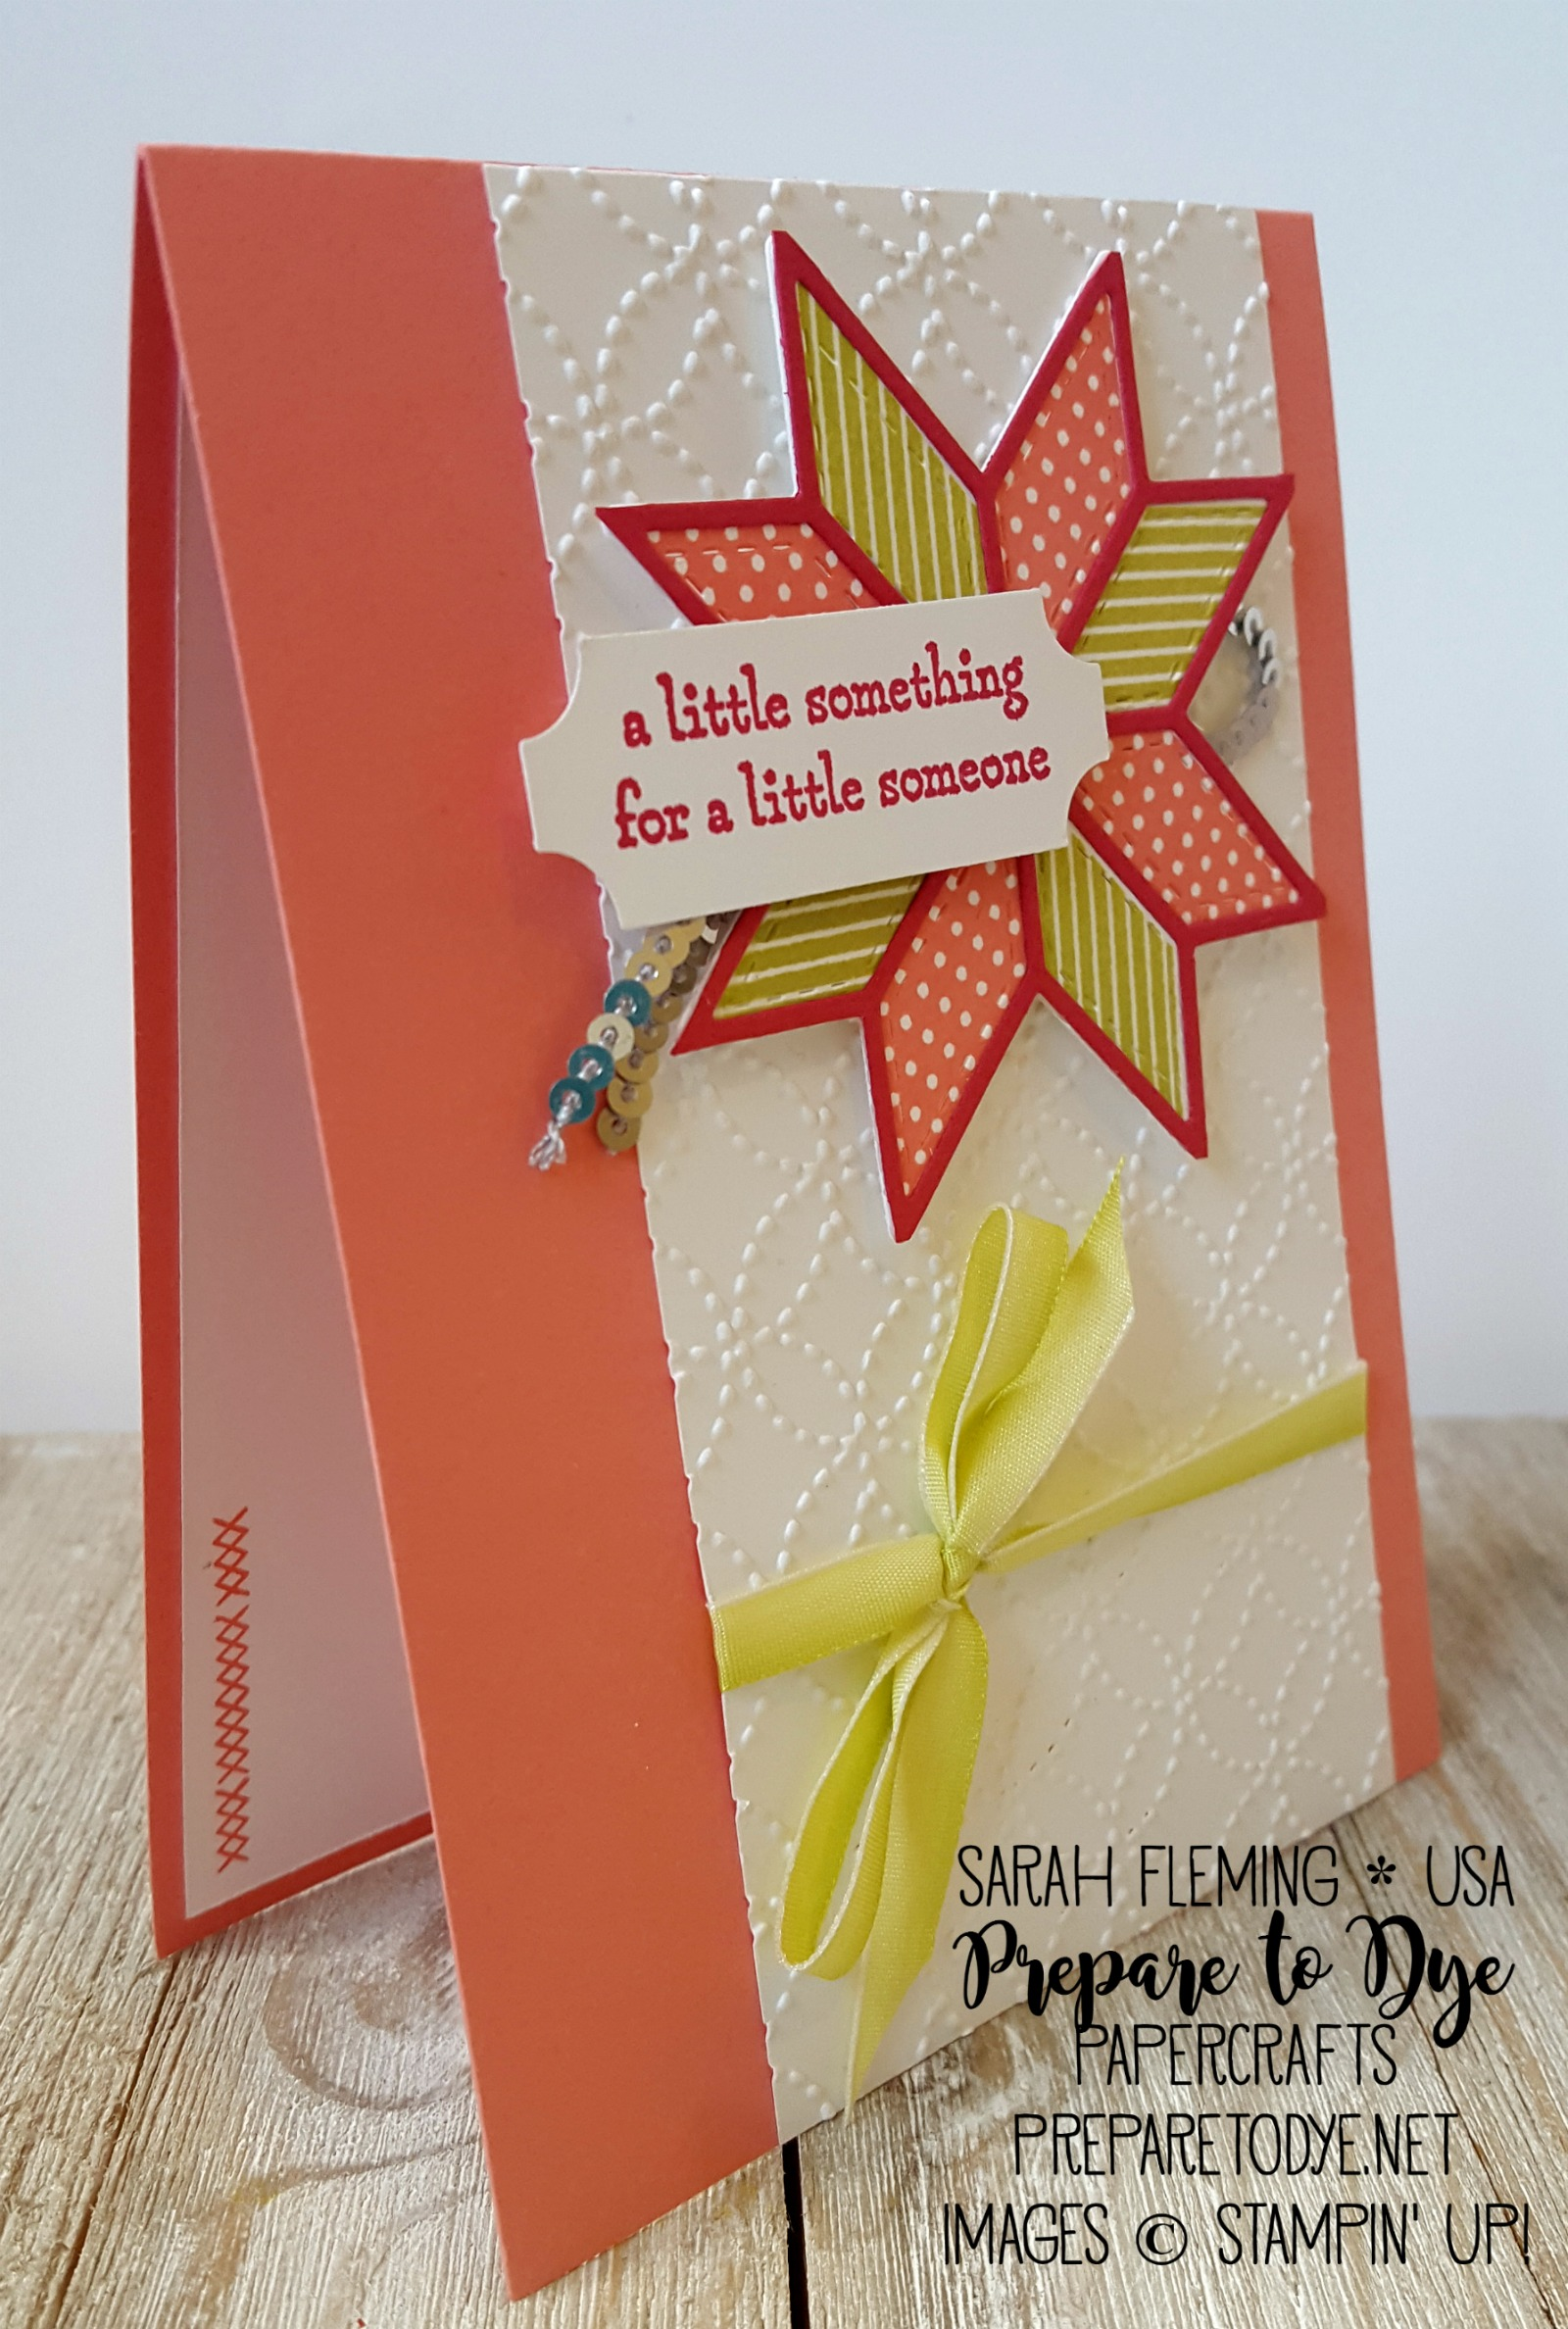 Stampin' Up! Christmas Quilt bundle with Quilt Builder framelits and Quilt Top Embossing folder, Lemon-Lime Twist Ombre Ribbon and Silver Mini Sequin Trim - handmade baby card - Sarah Fleming - Prepare to Dye Papercrafts